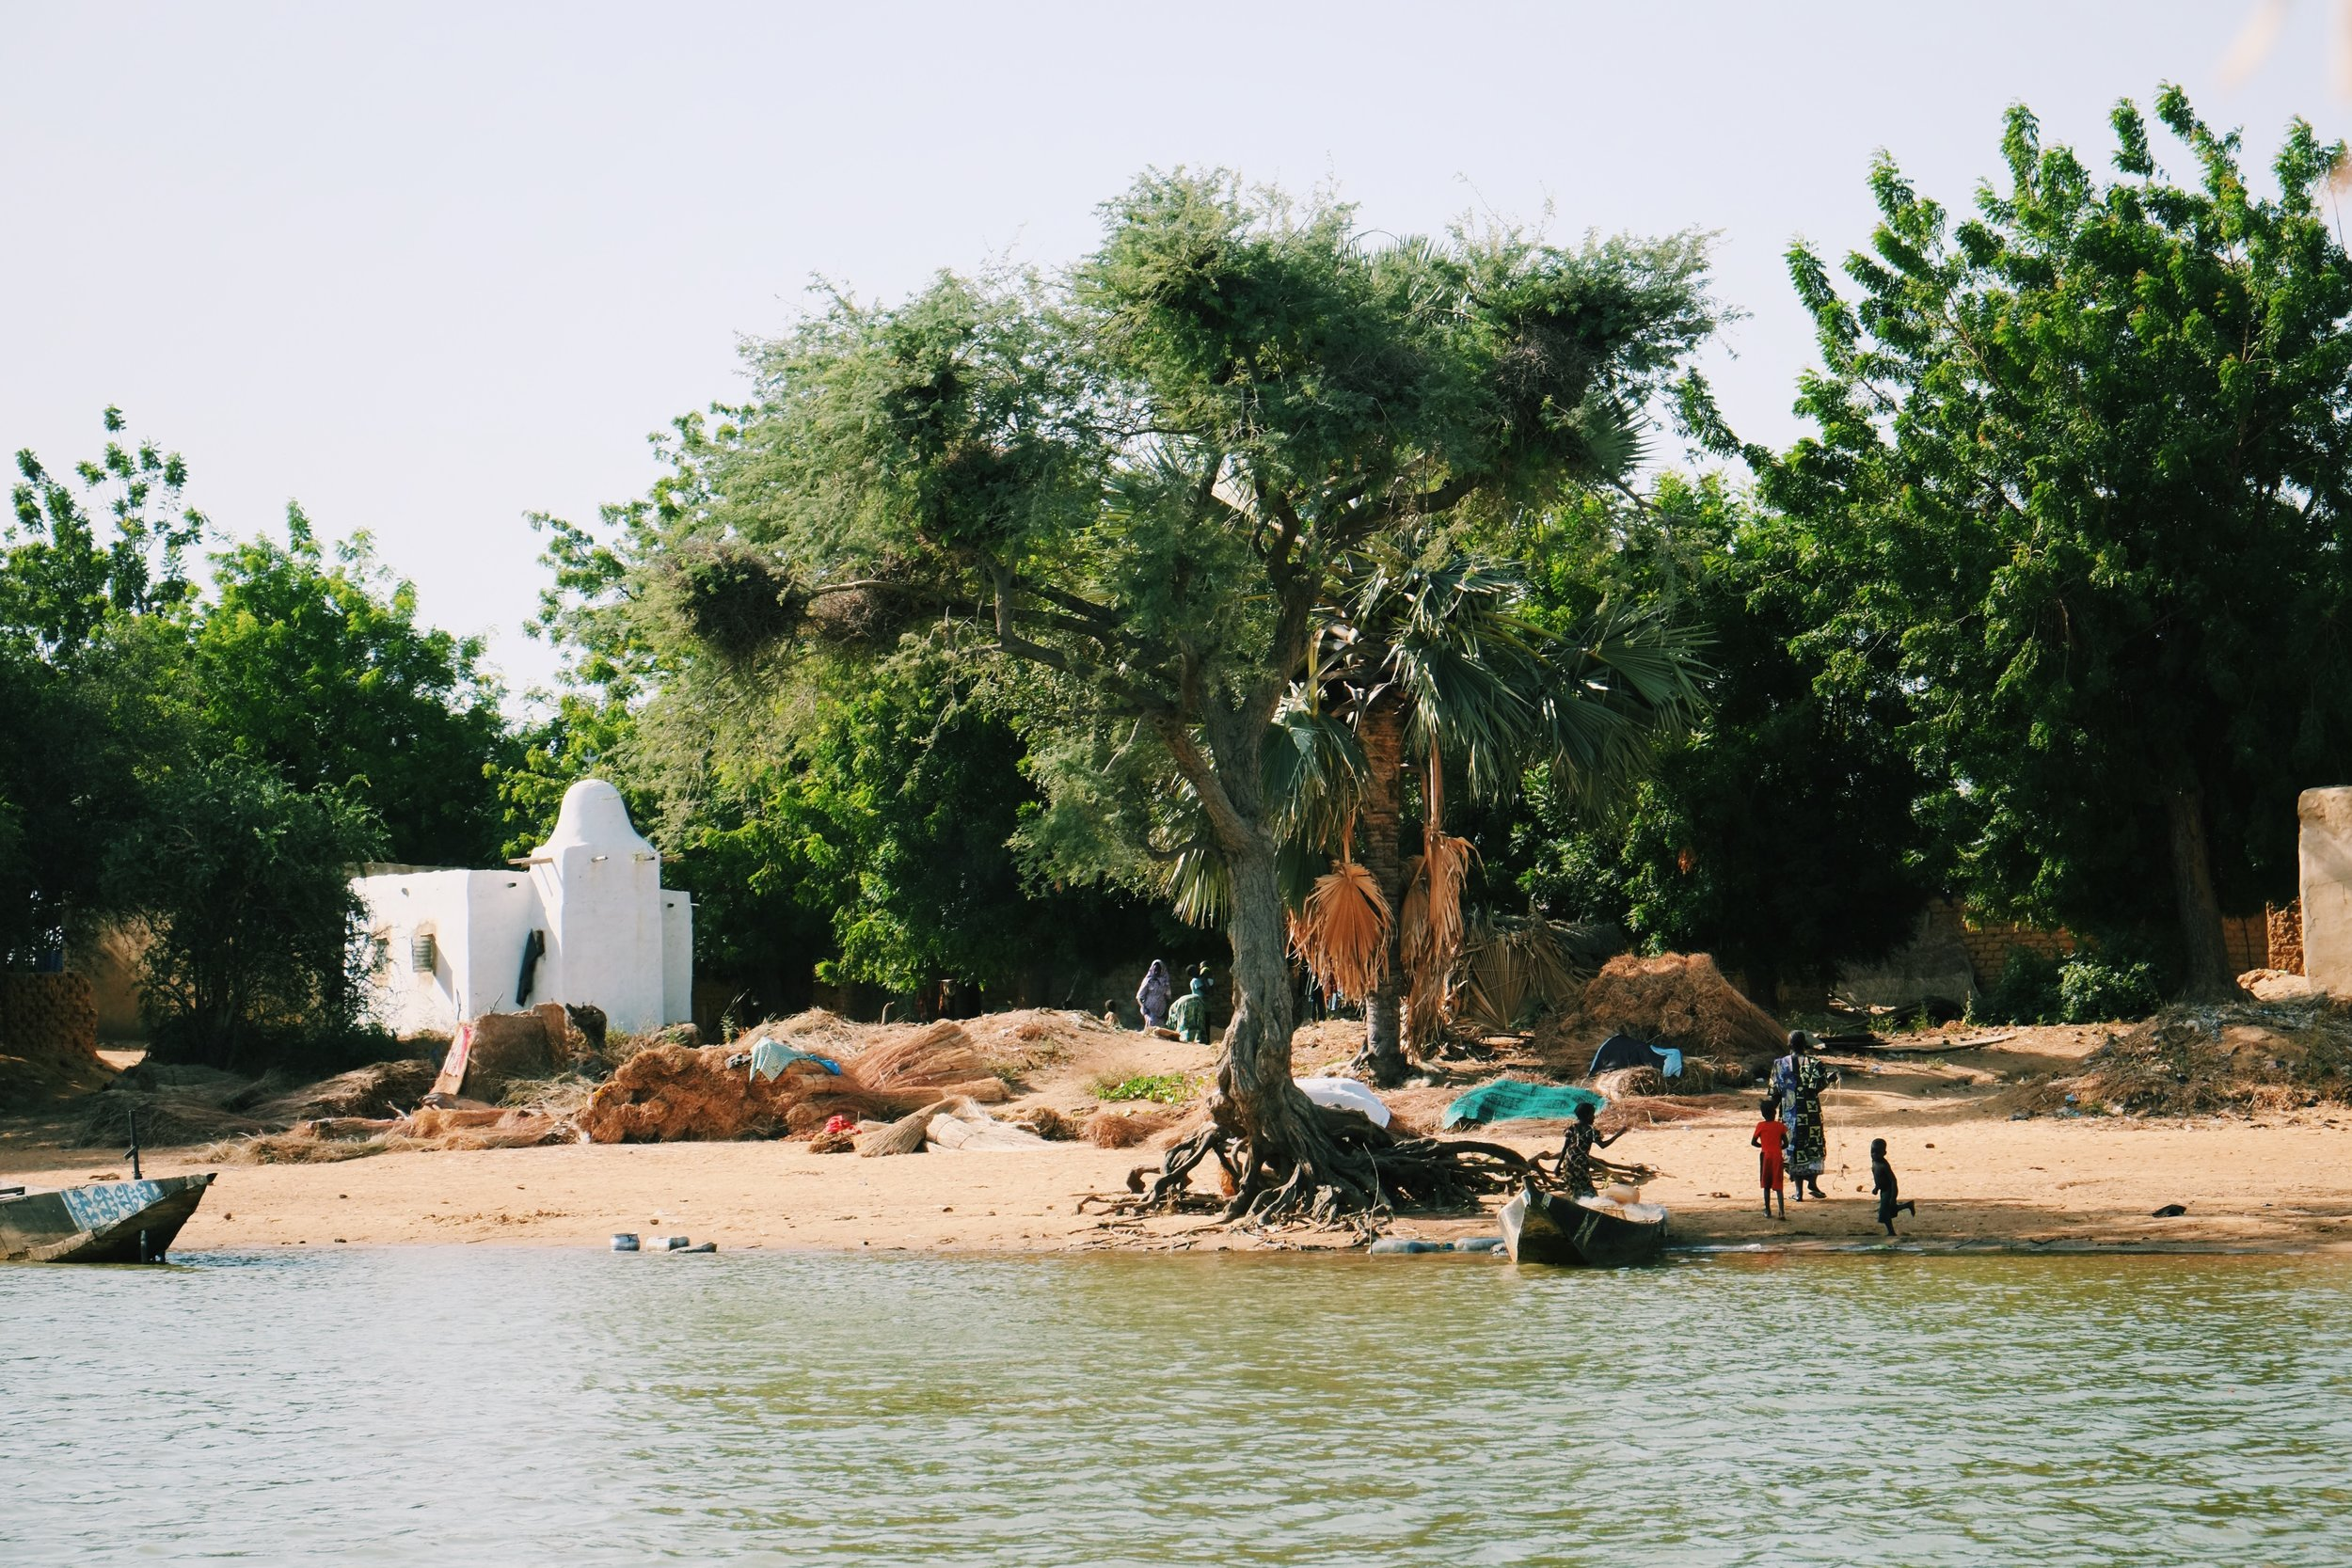 Segou Niger River by Joost Bastmeijer in Mali.jpeg